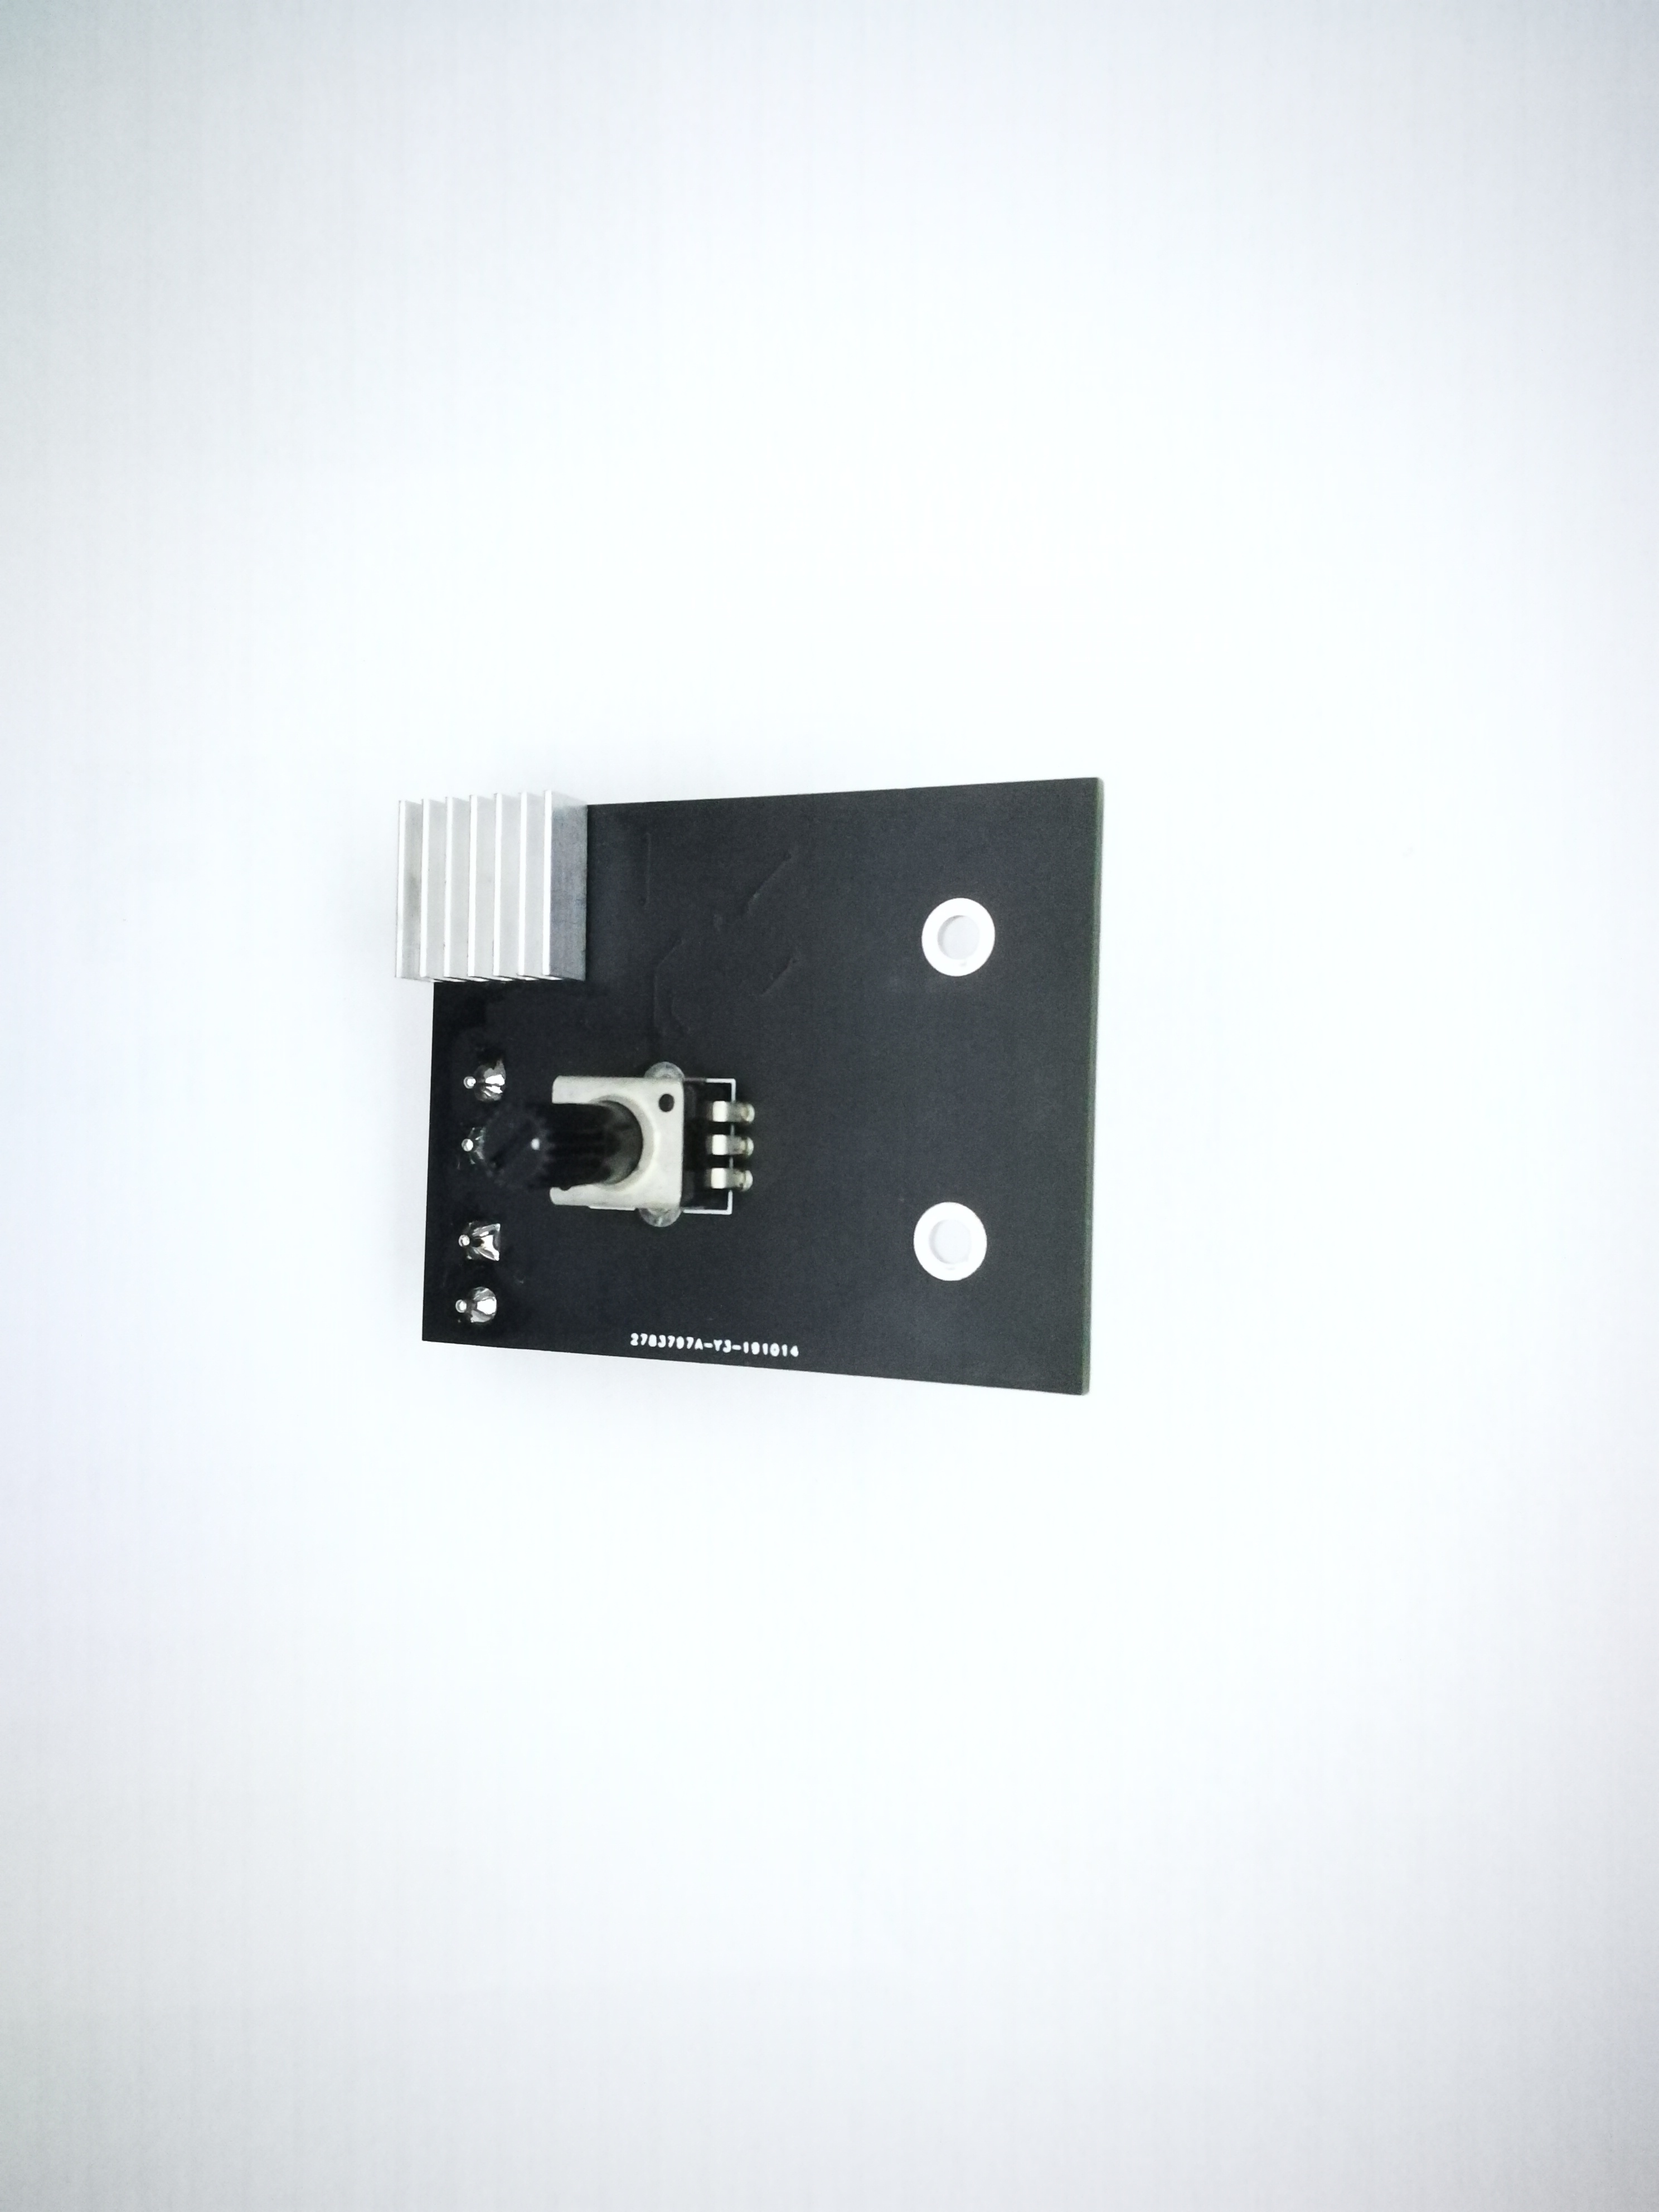 LED Dimmer for 2020 Aluminum Extrusion IMG 20200511 103510.jpg